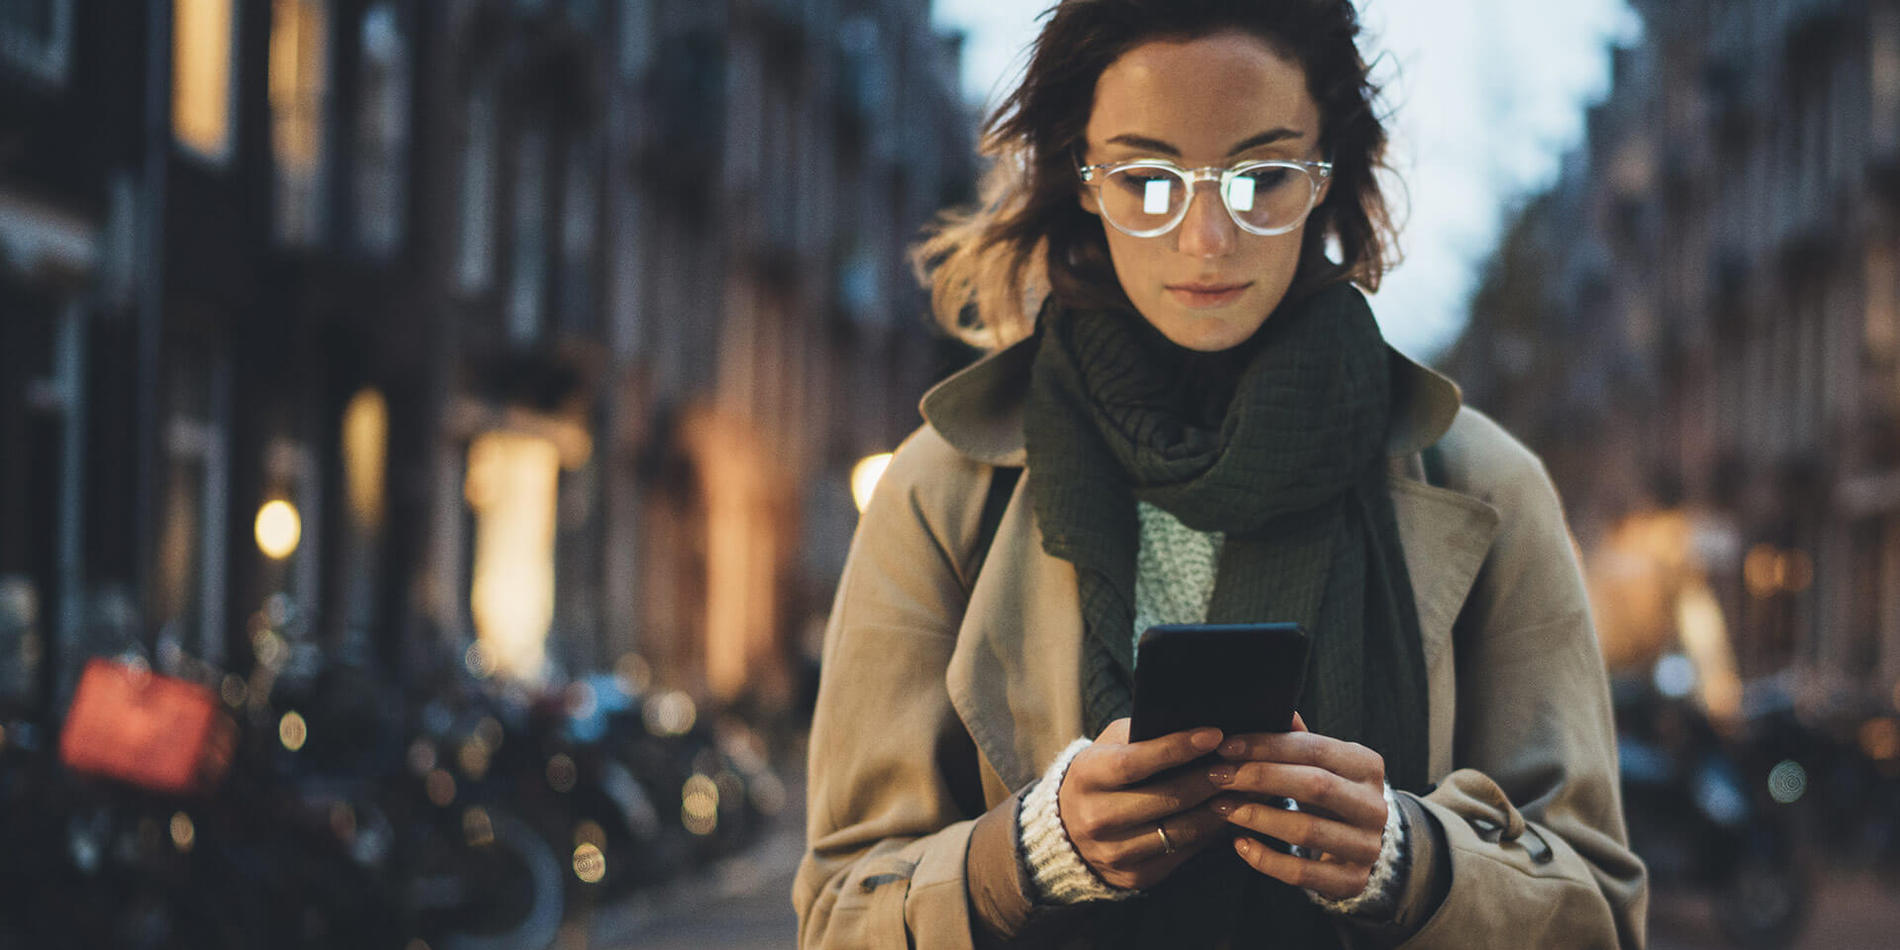 Photo of young woman looking at her Suddenlink WiFi Hotspot connected phone while walking on a city street